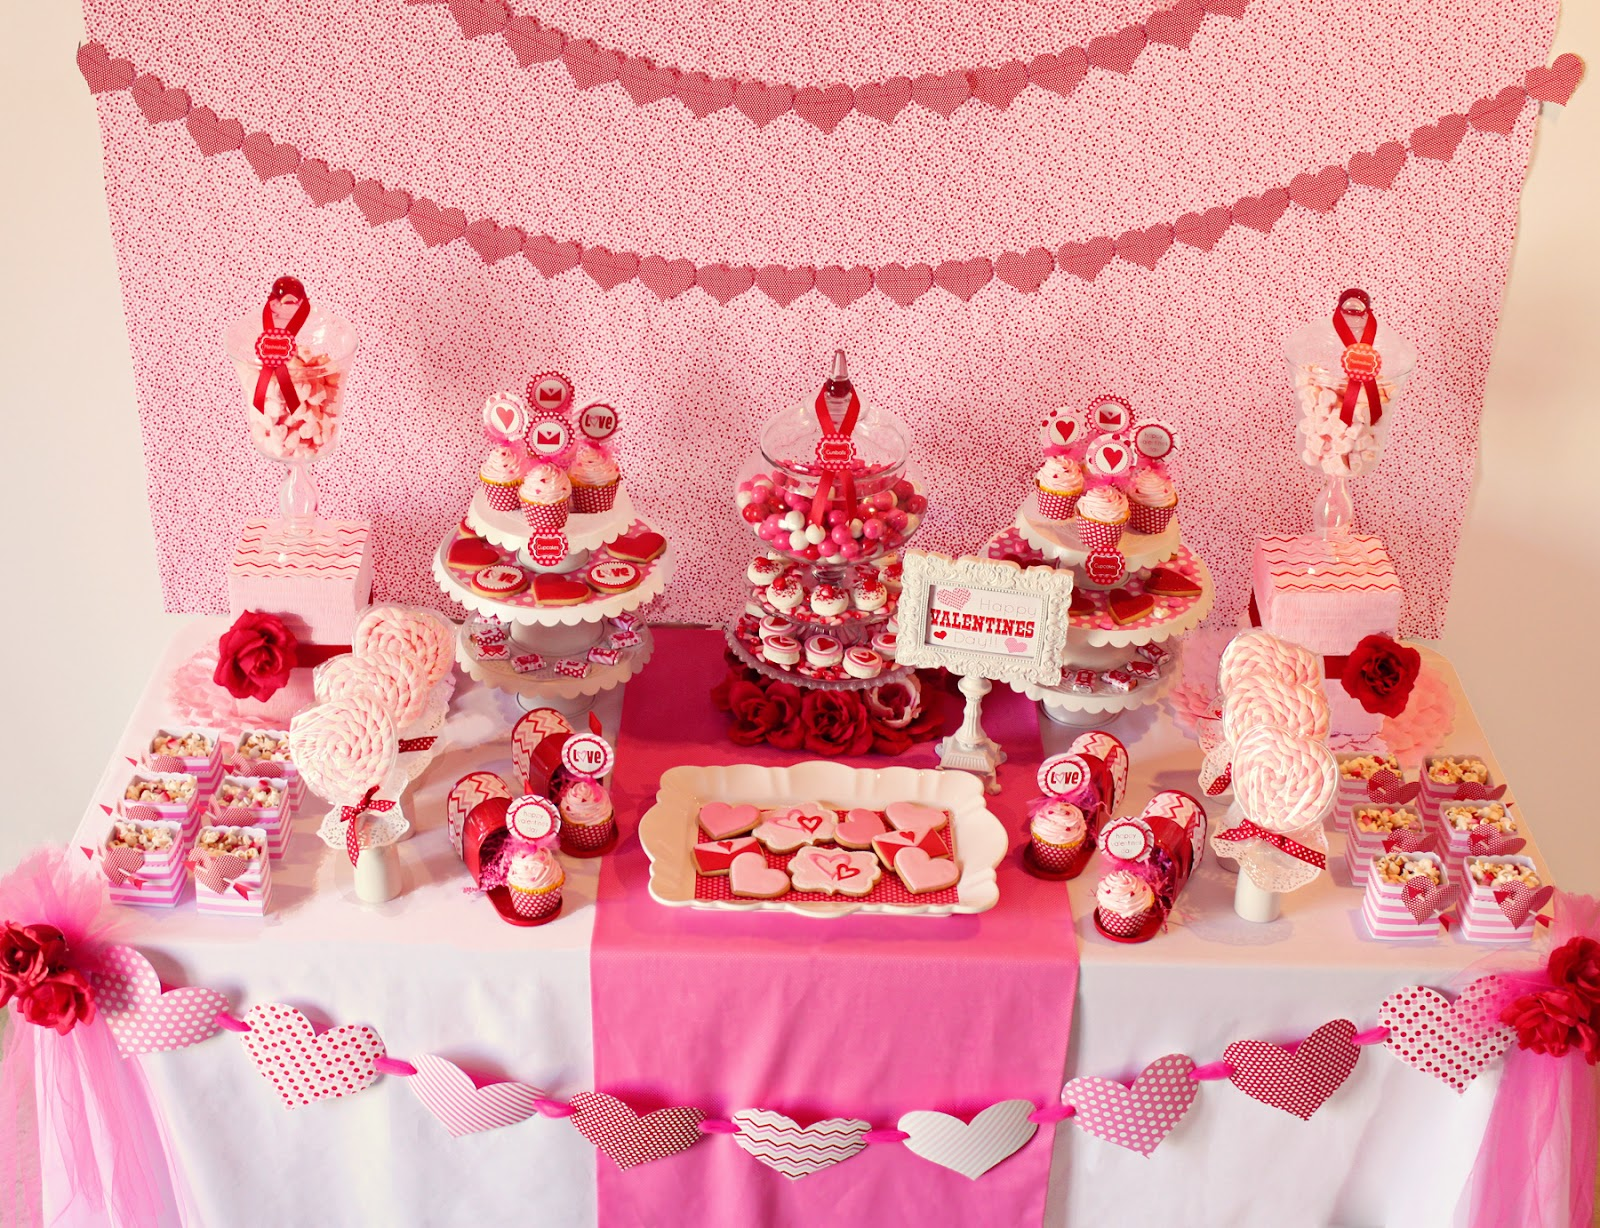 San Valentin Decoration 1000 Images About Kate Spade Inspired Party On Pinterest Kate